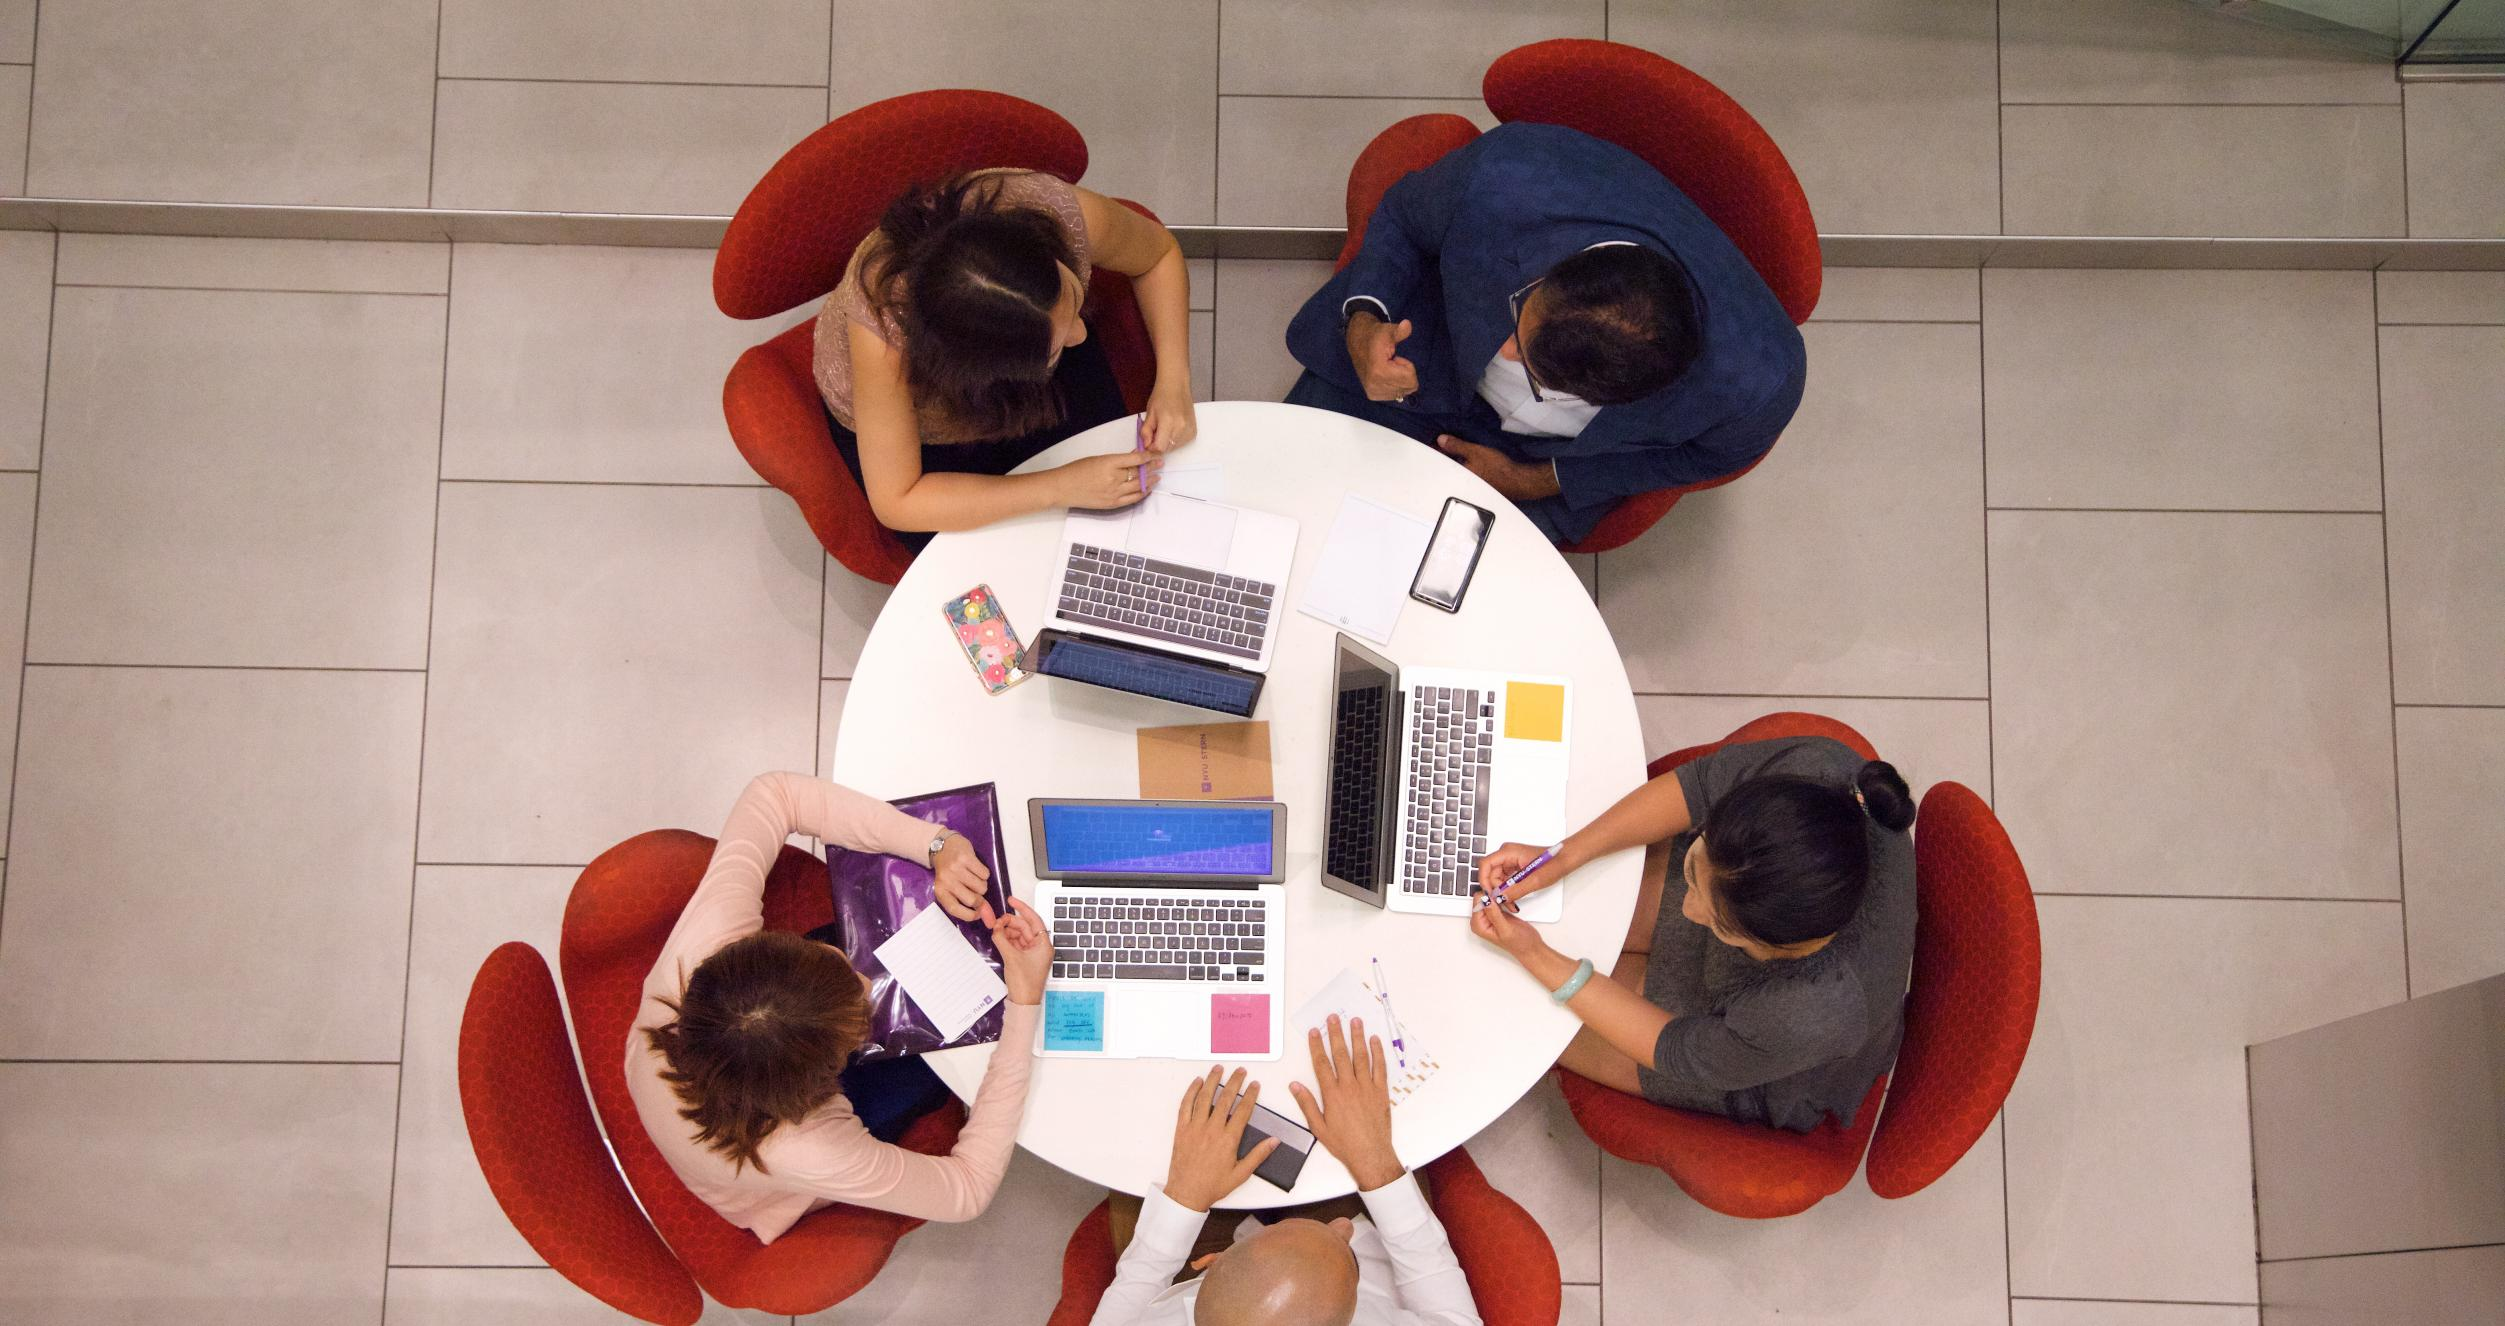 Students around a circular table with laptops